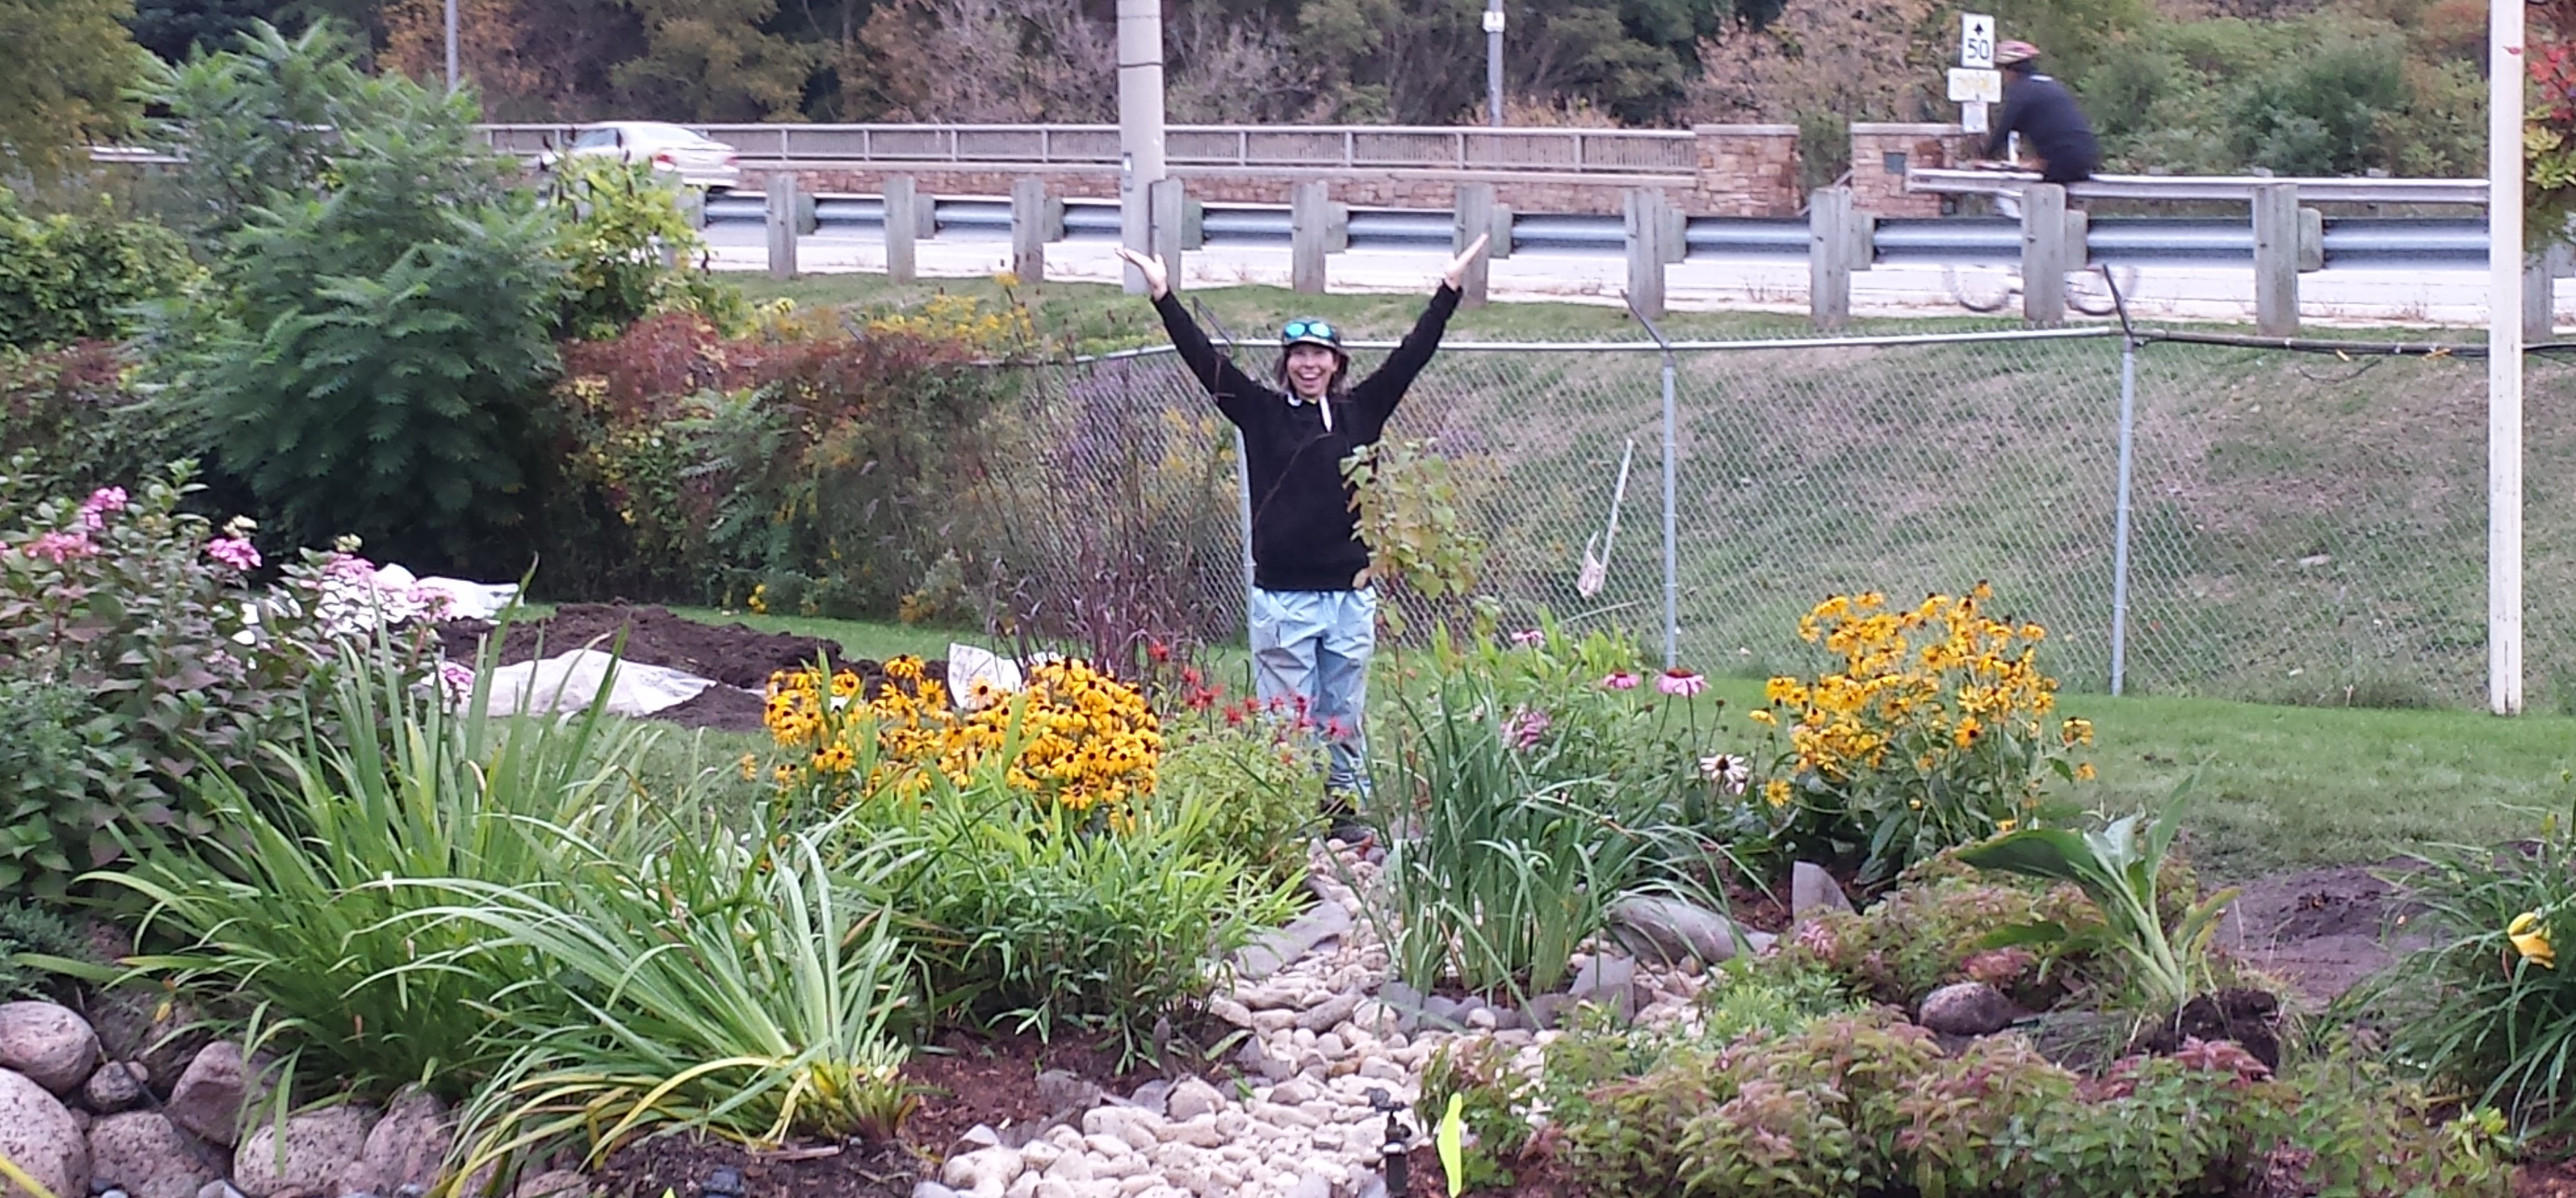 Volunteer posing with the completed rain garden.